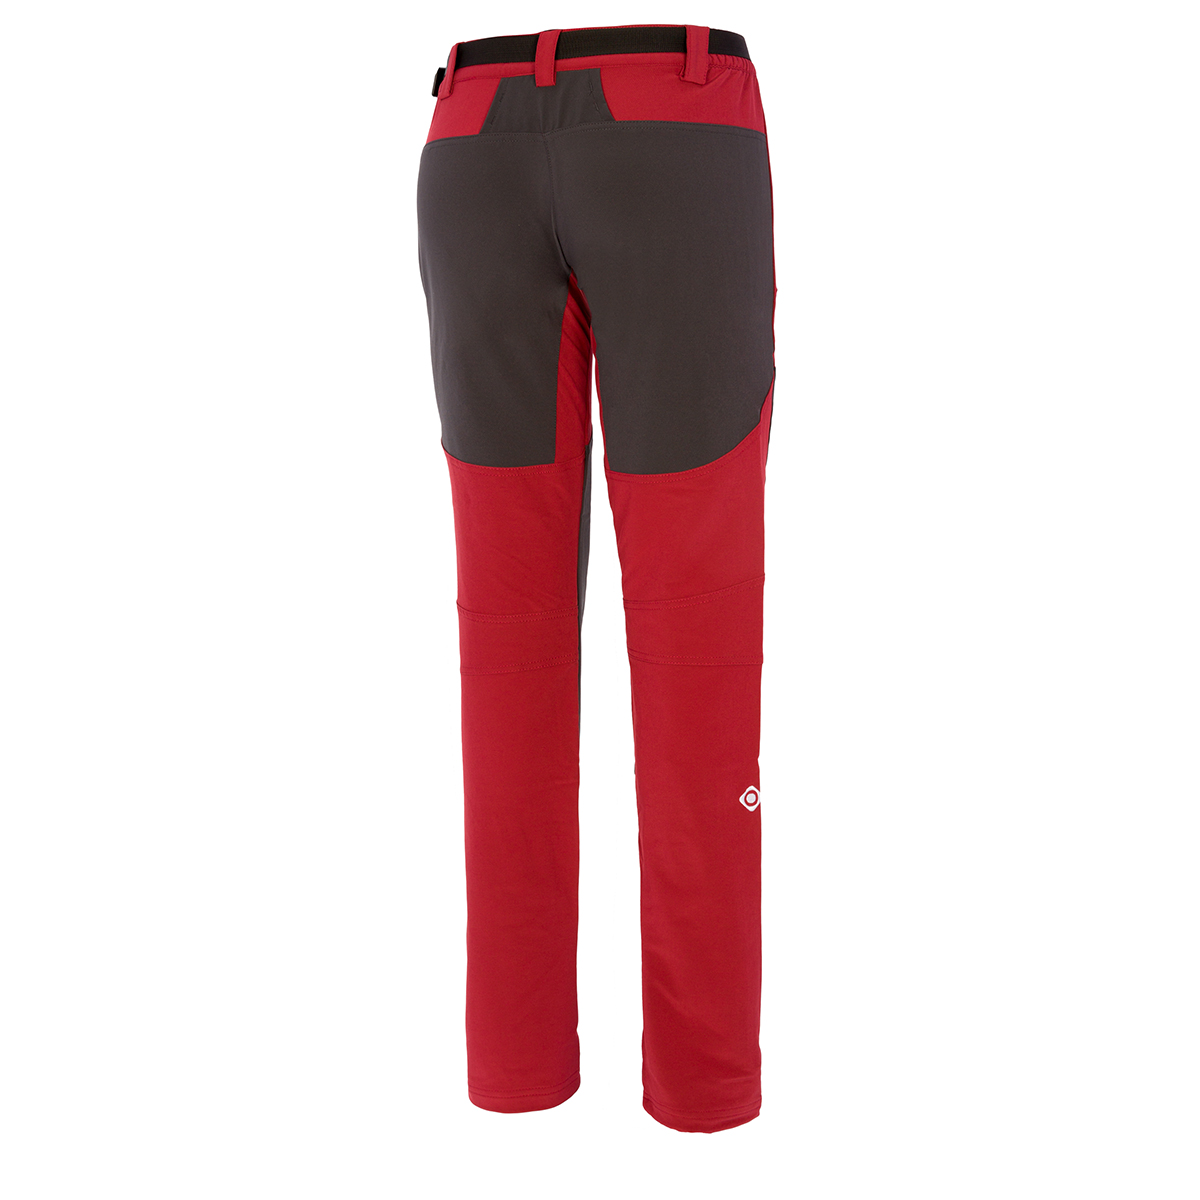 WOMAN'S DOROTA STRETCH PANT RED